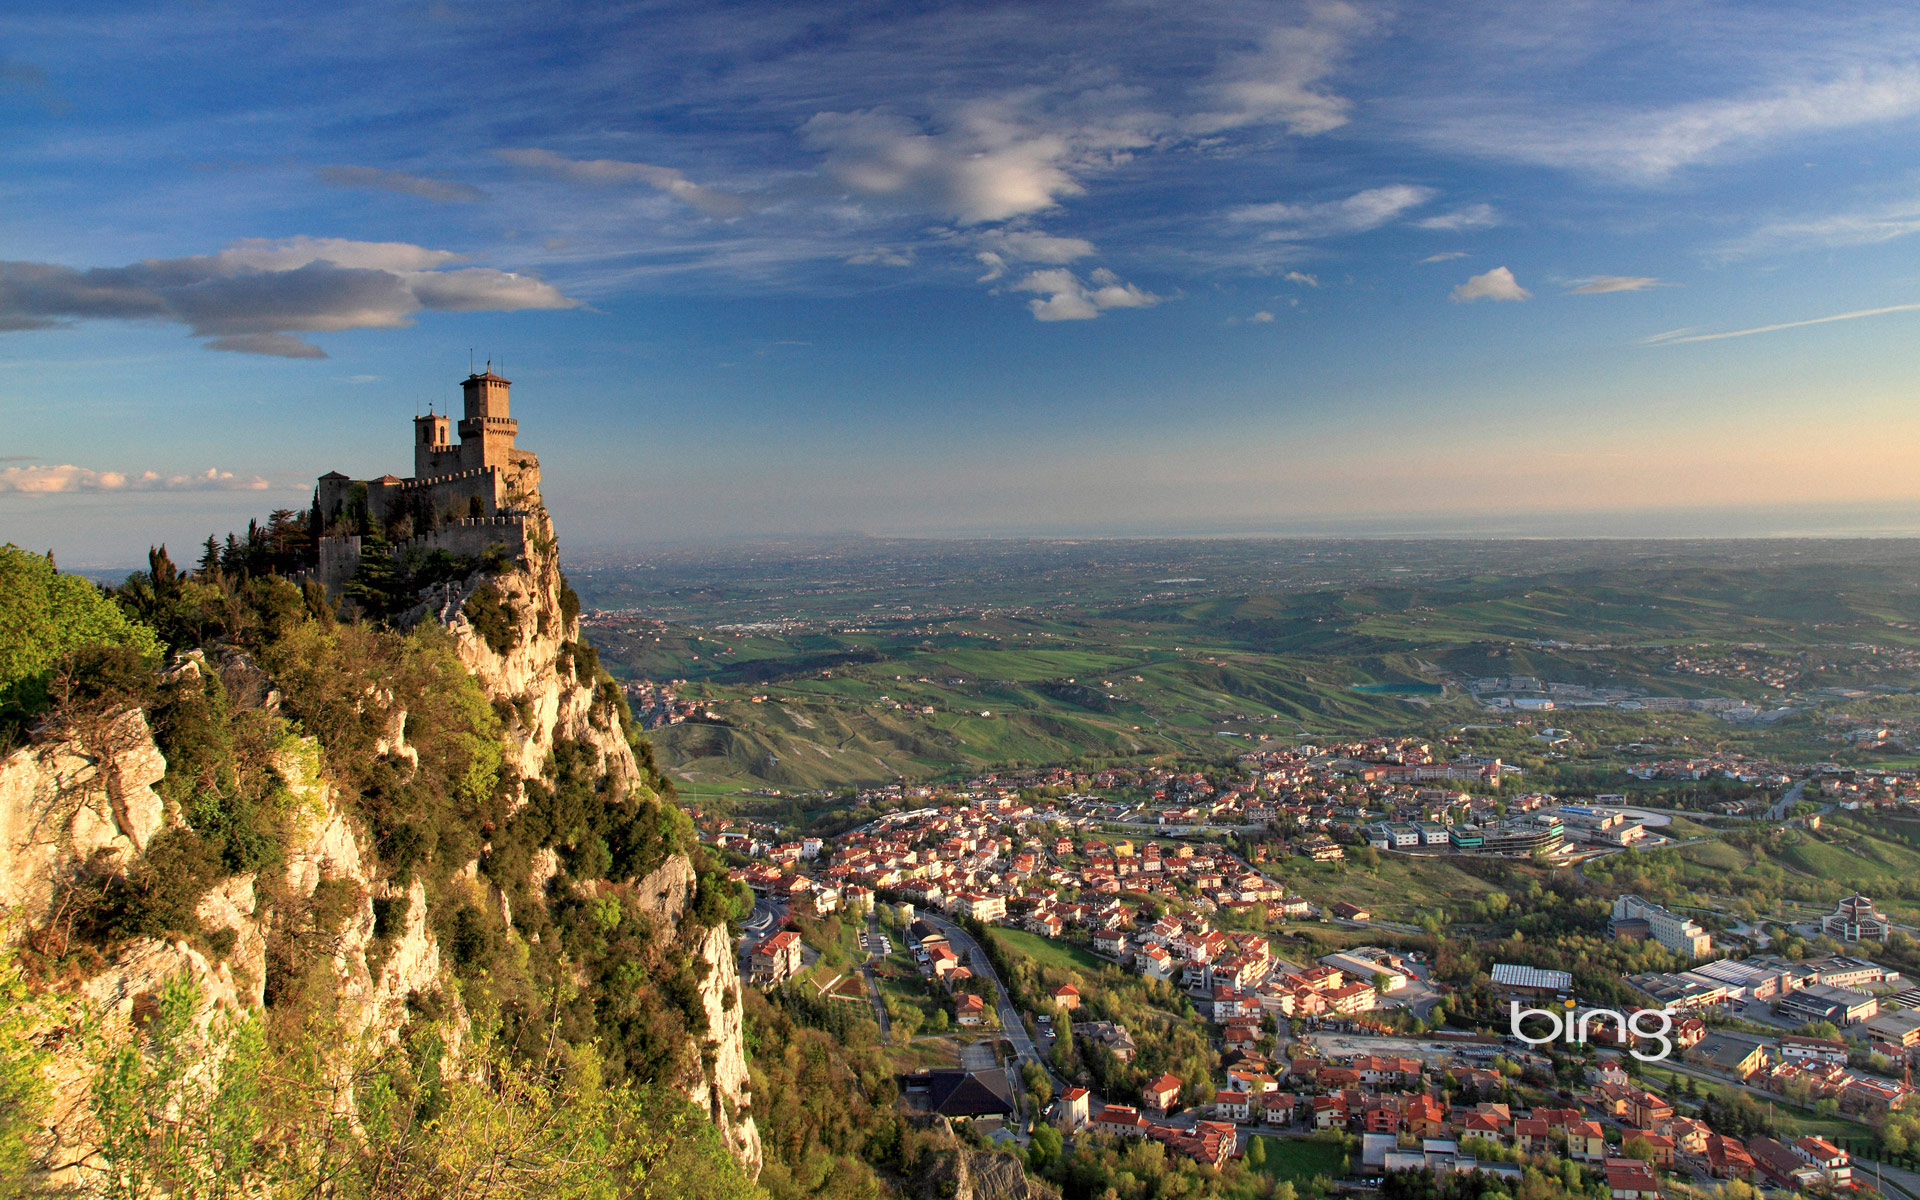 http://www.travelsys.sk/public/users/paxtour/images/fotogaleria_hotel/l_san-marino-.jpg